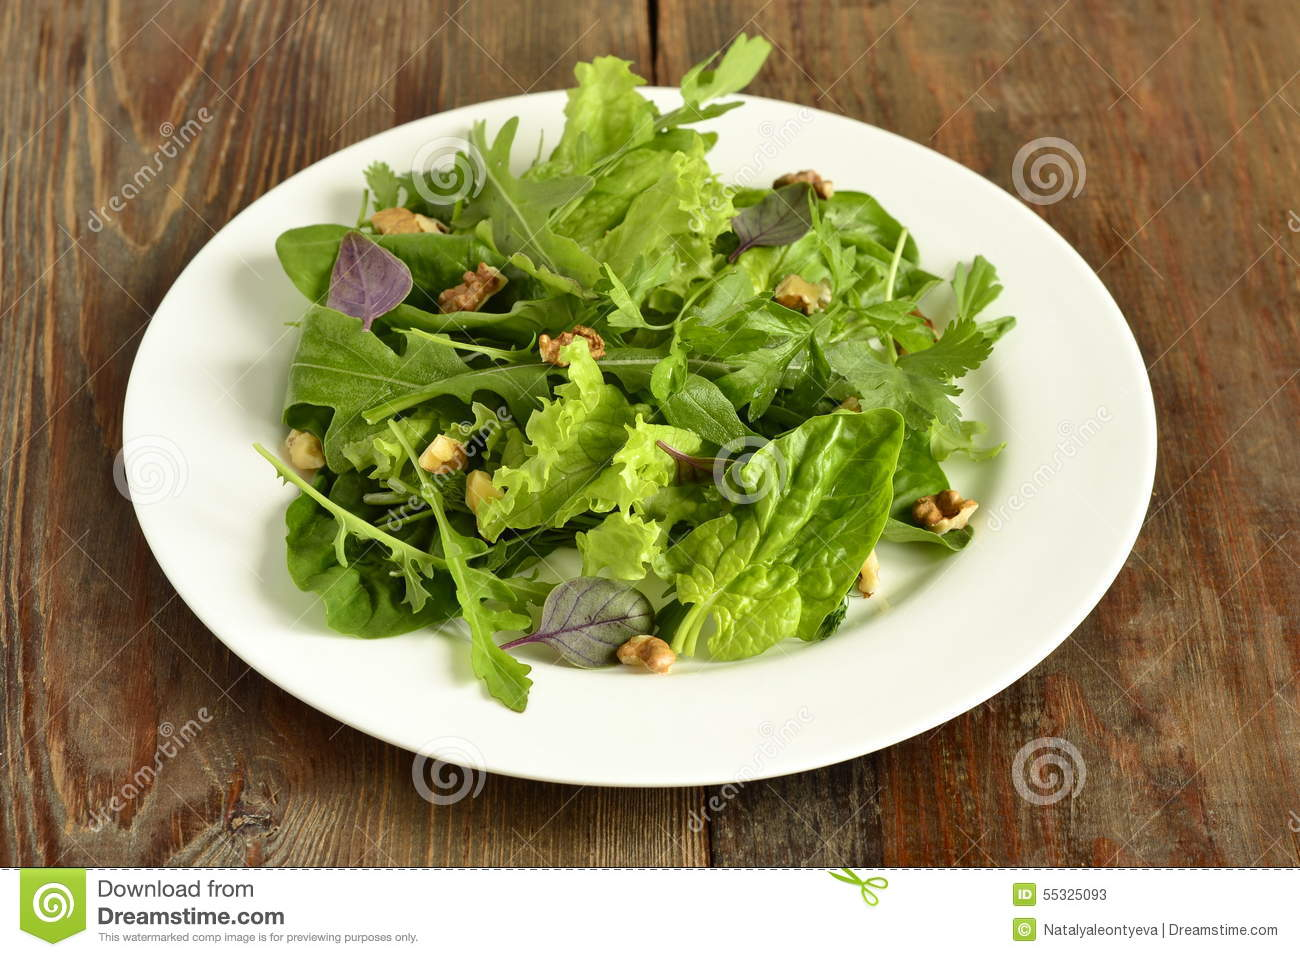 Salad With Spinach, Arugula, Lettuce, Herbs And Nuts Stock ...